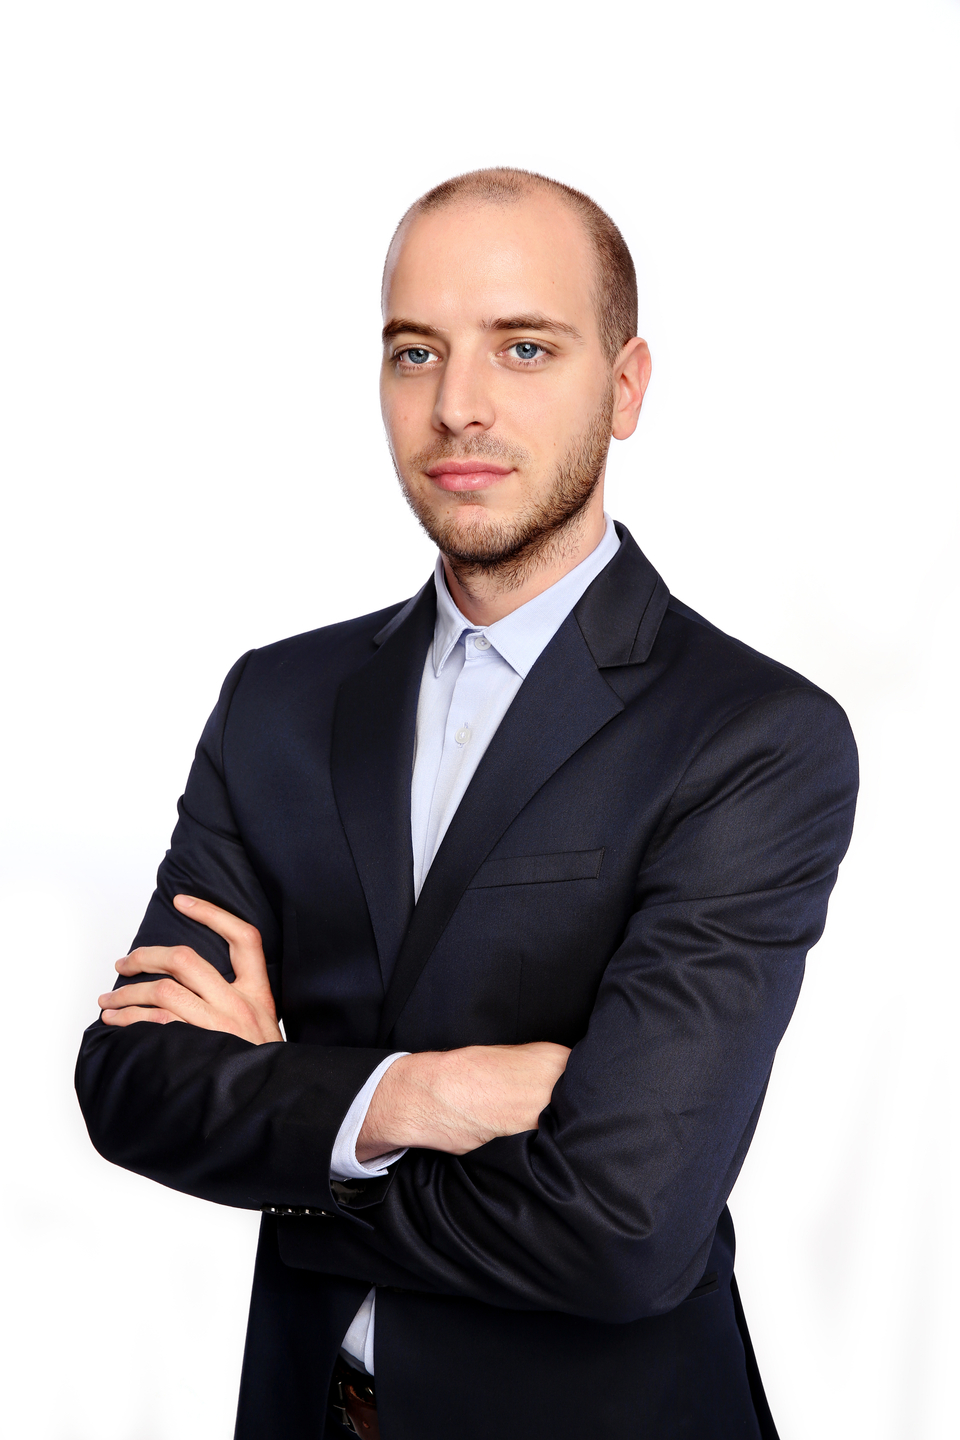 Juraj Velička, Director of Innovation, News and Media Holding